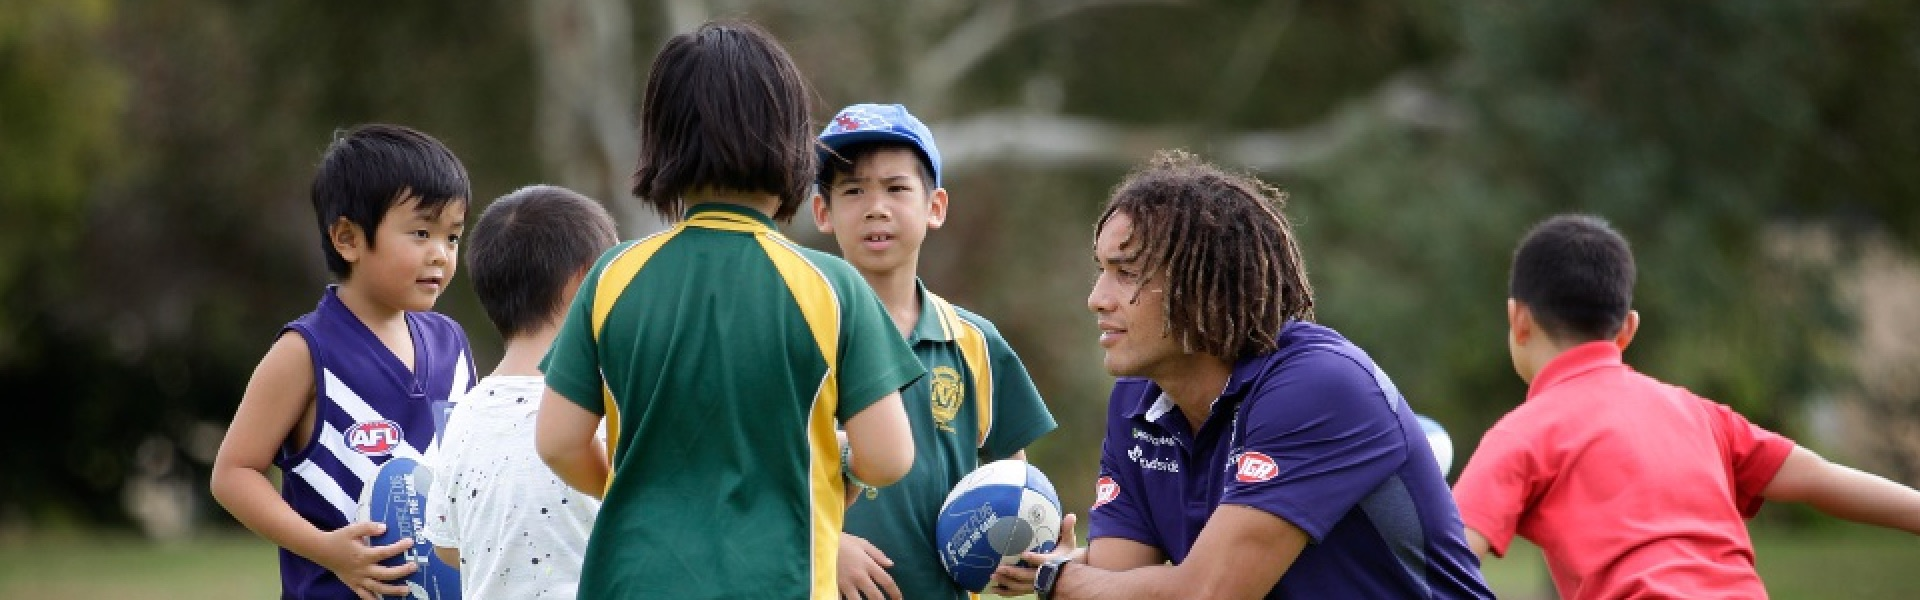 Practical steps to support diversity in sport